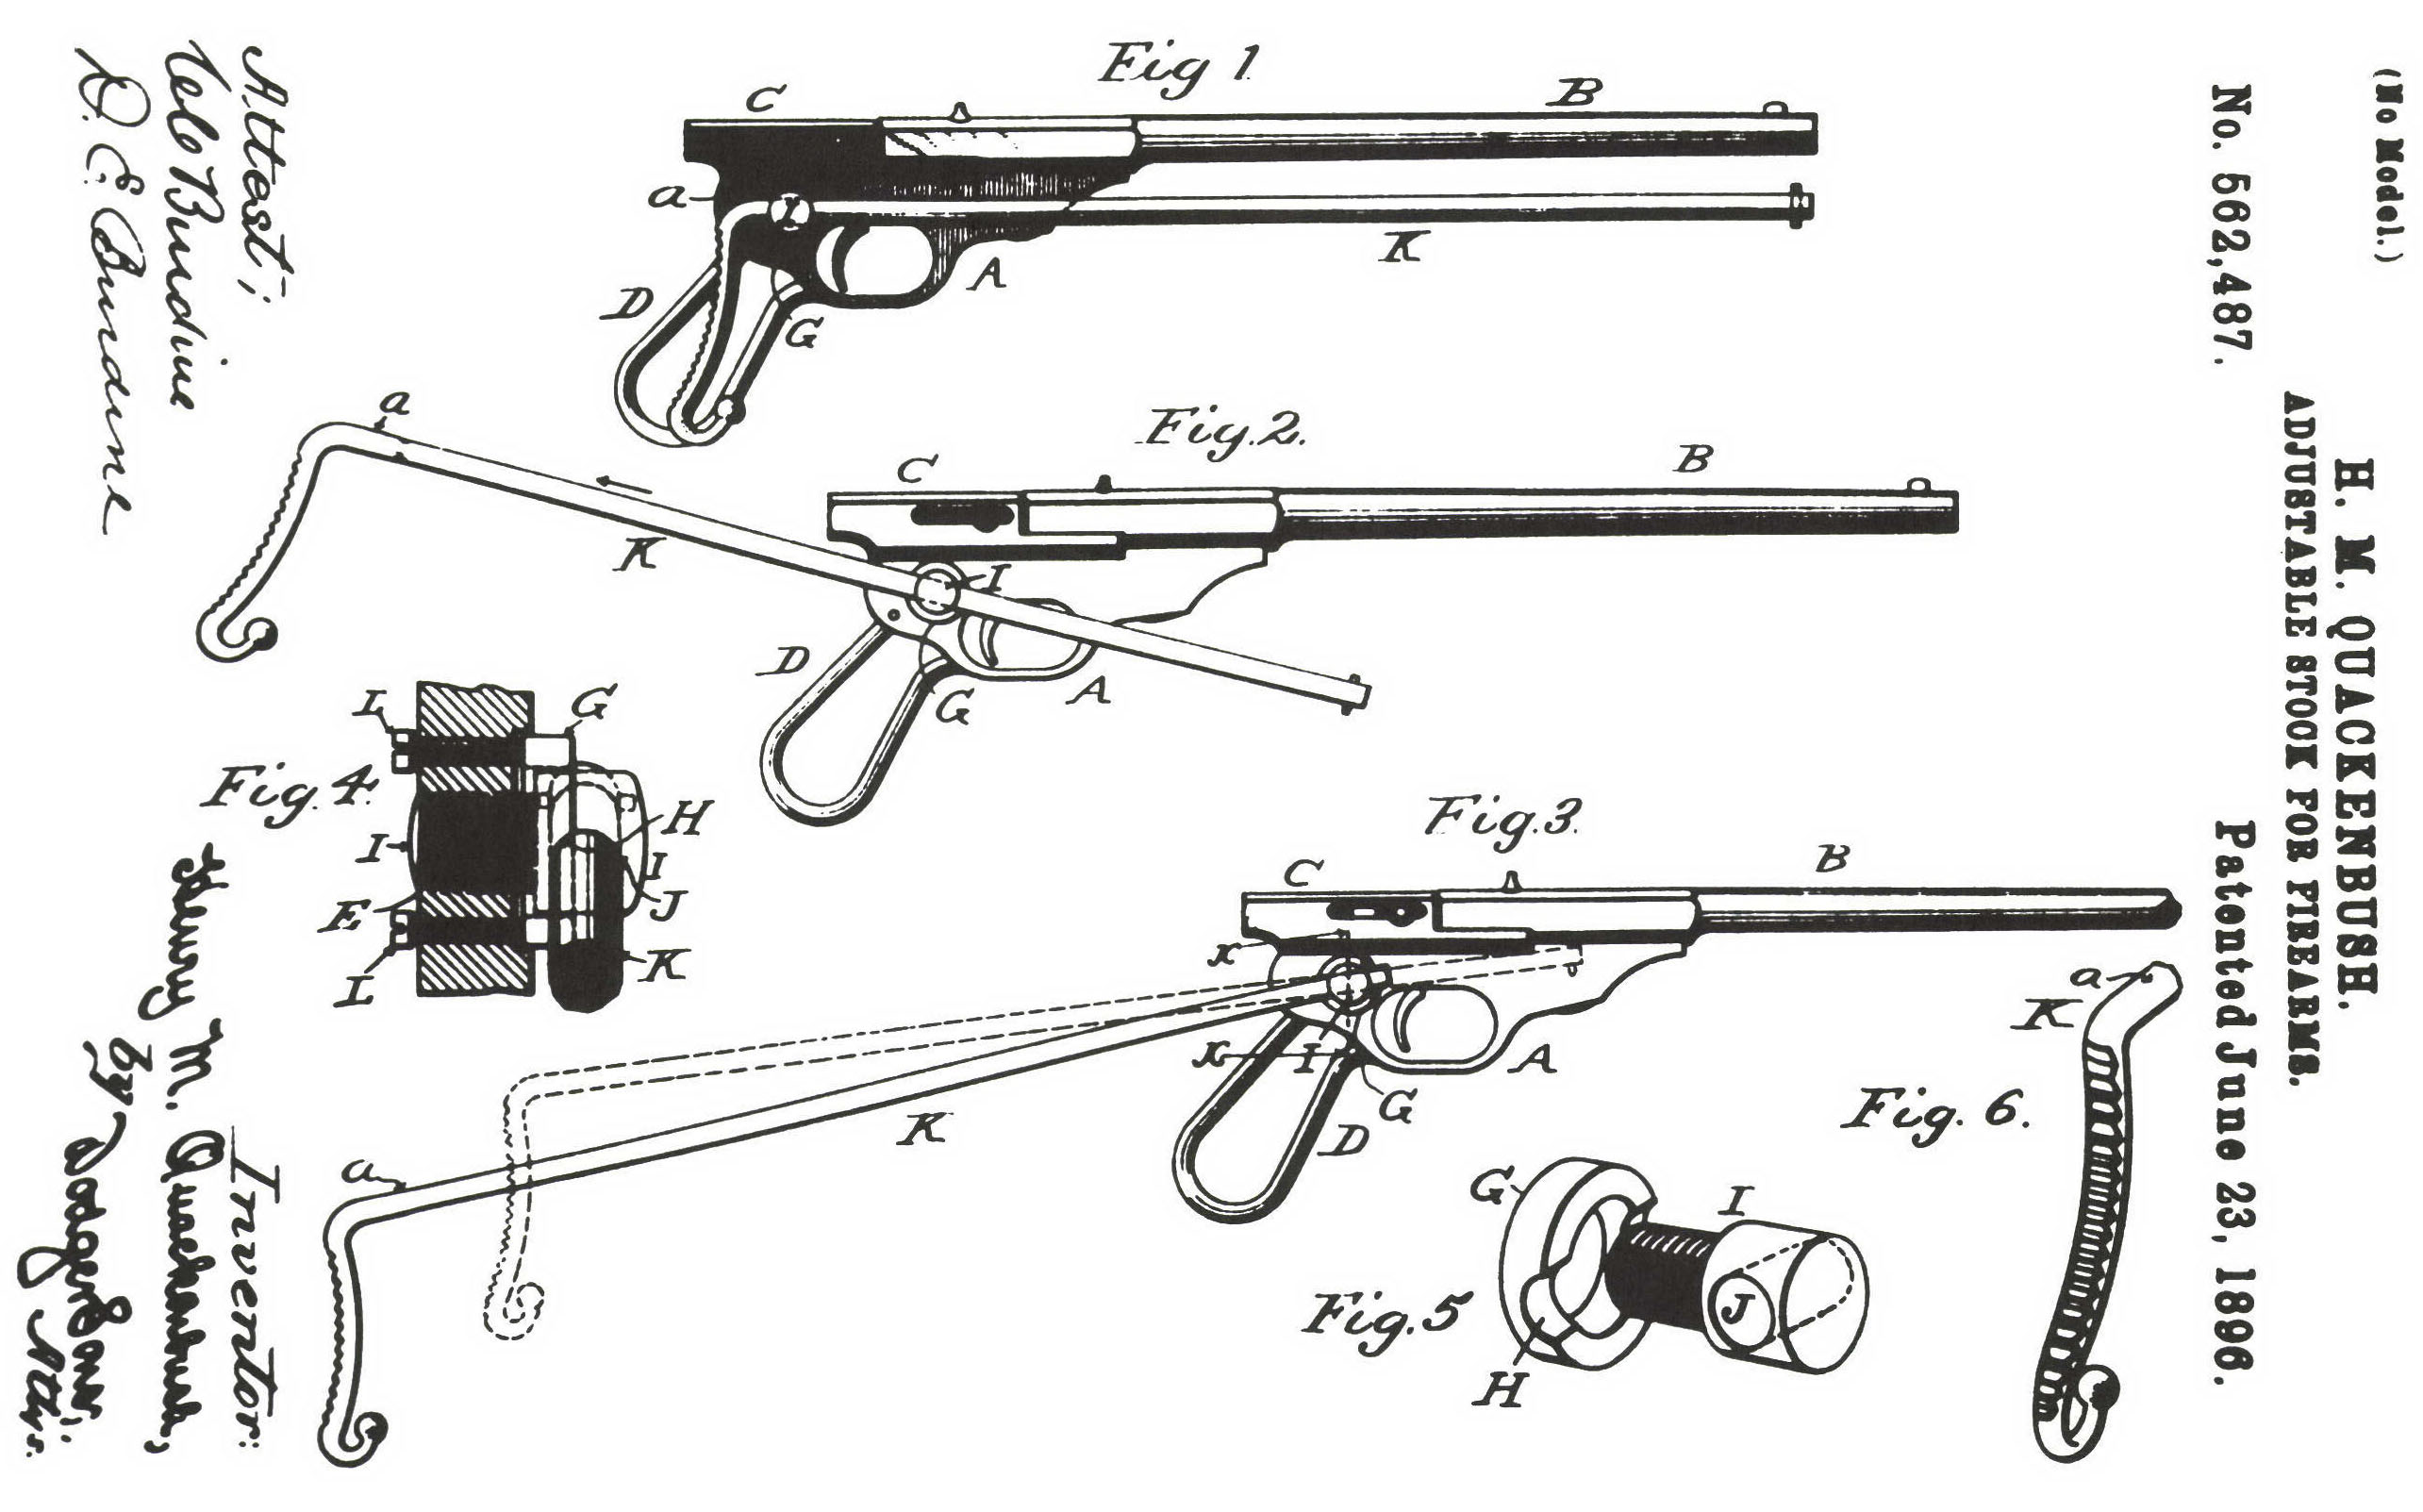 Bicycle Rifle Schematic